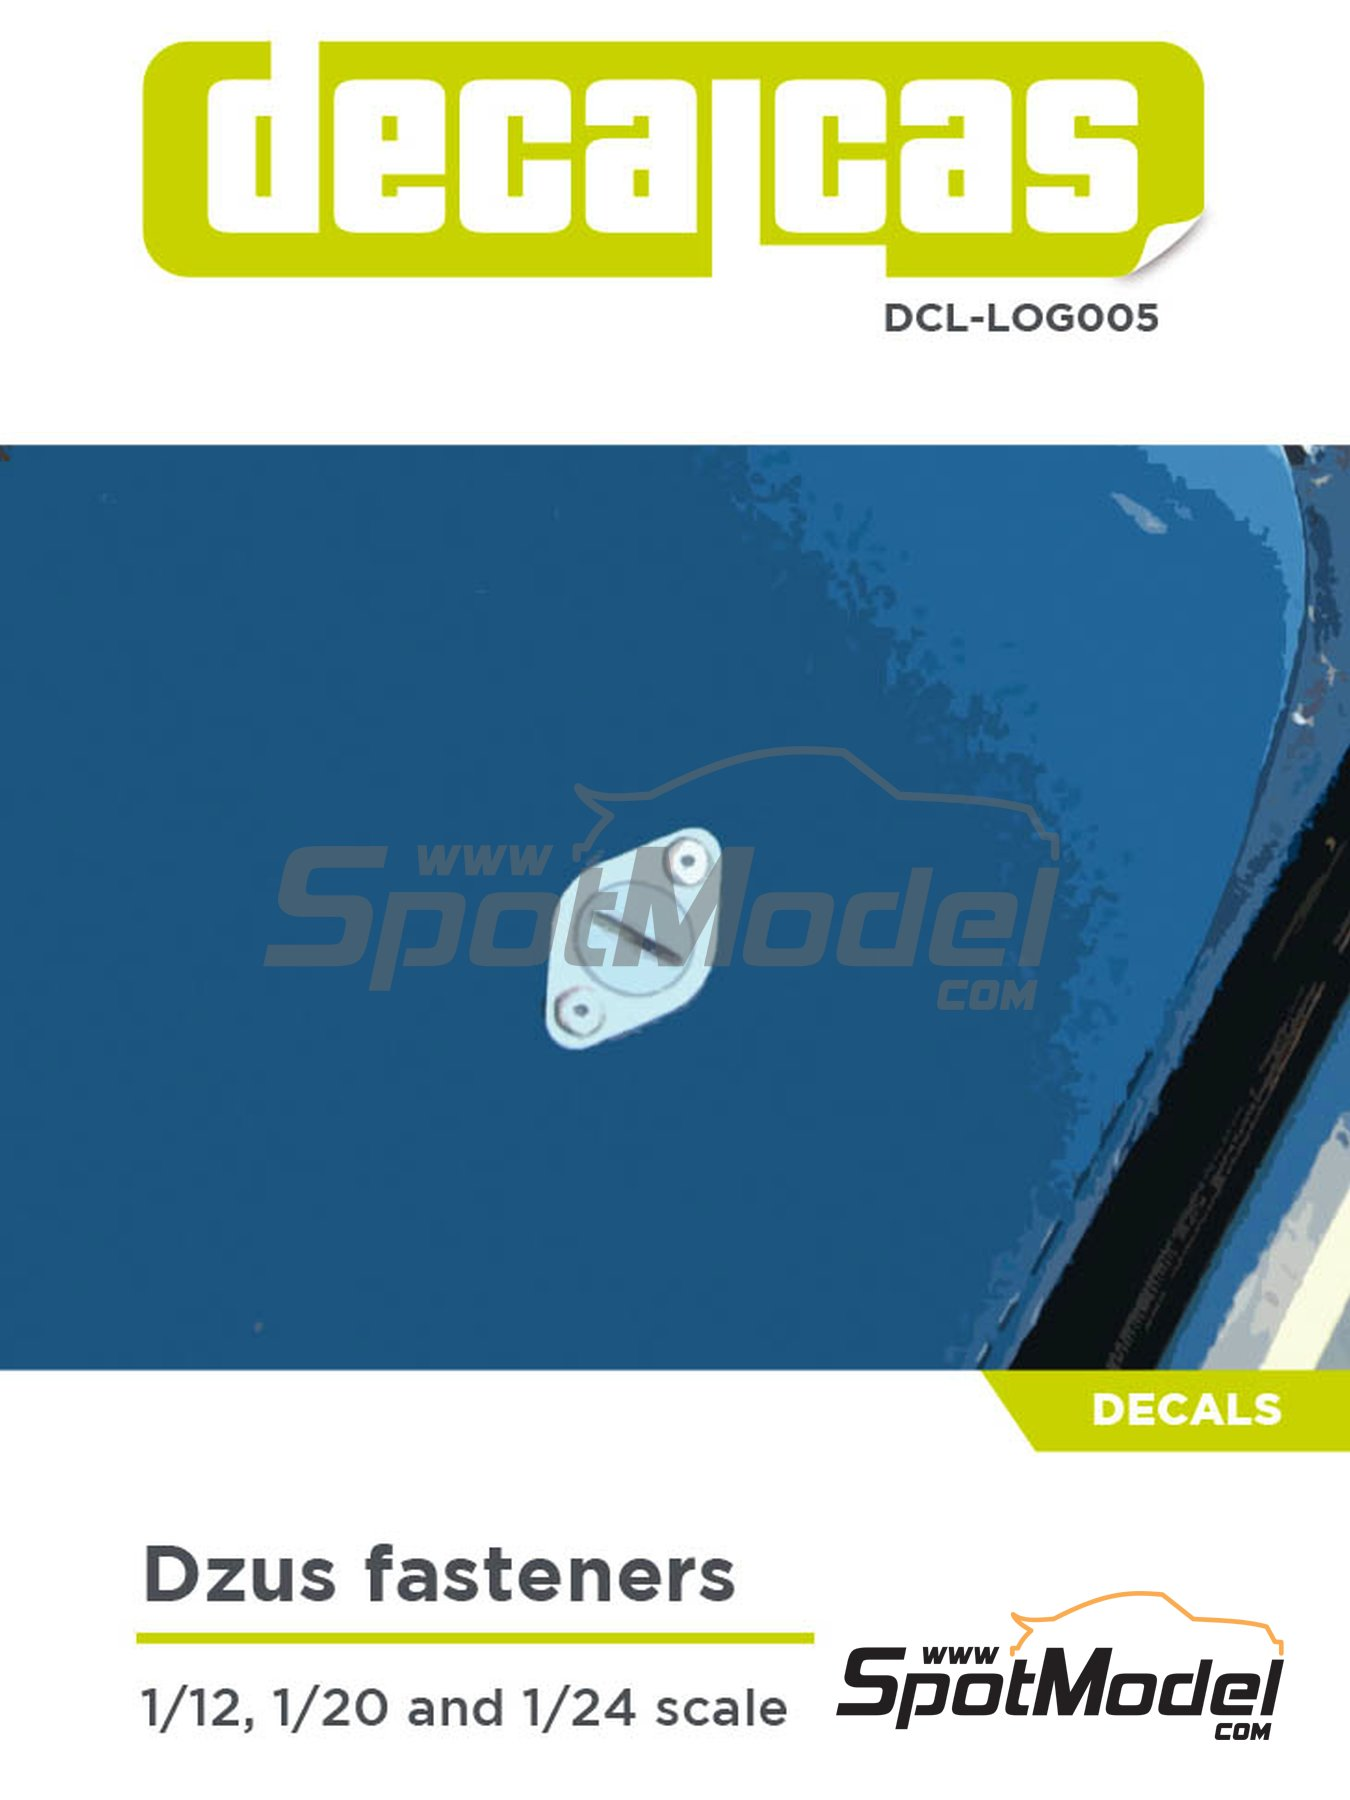 Dzus fasteners 1/12 1/20 1/24 | Decals manufactured by Decalcas (ref. DCL-LOG005) image